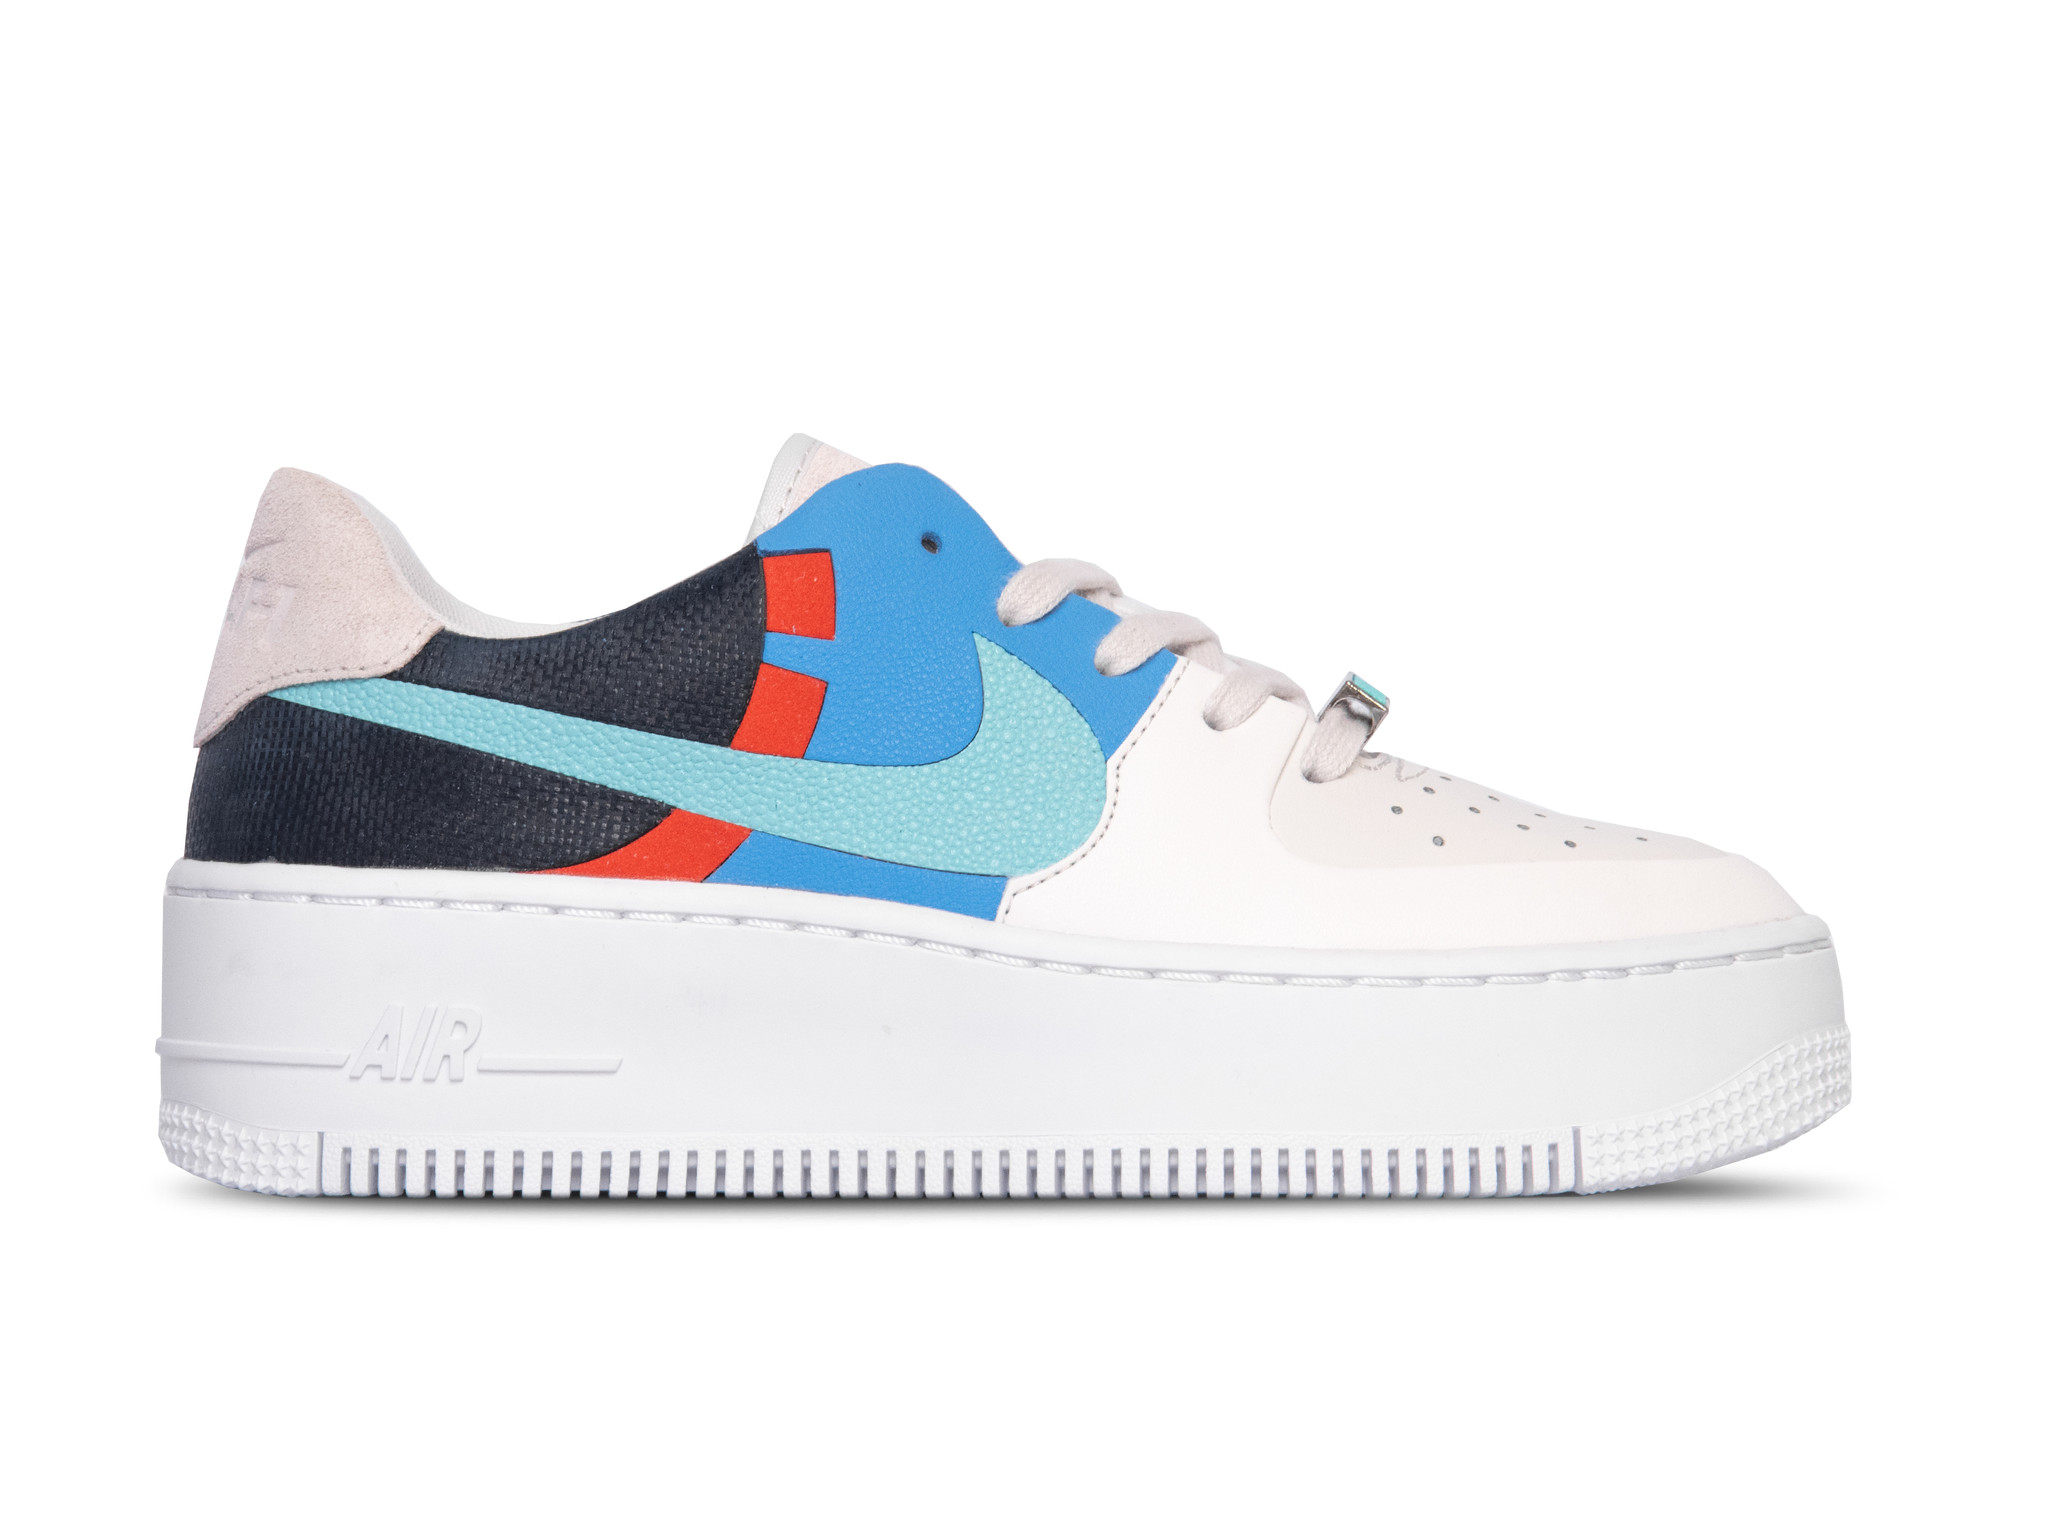 look for outlet for sale new appearance Air Force 1 Sage Low Lx Platinum Tint Light Aqua Obsidian ...